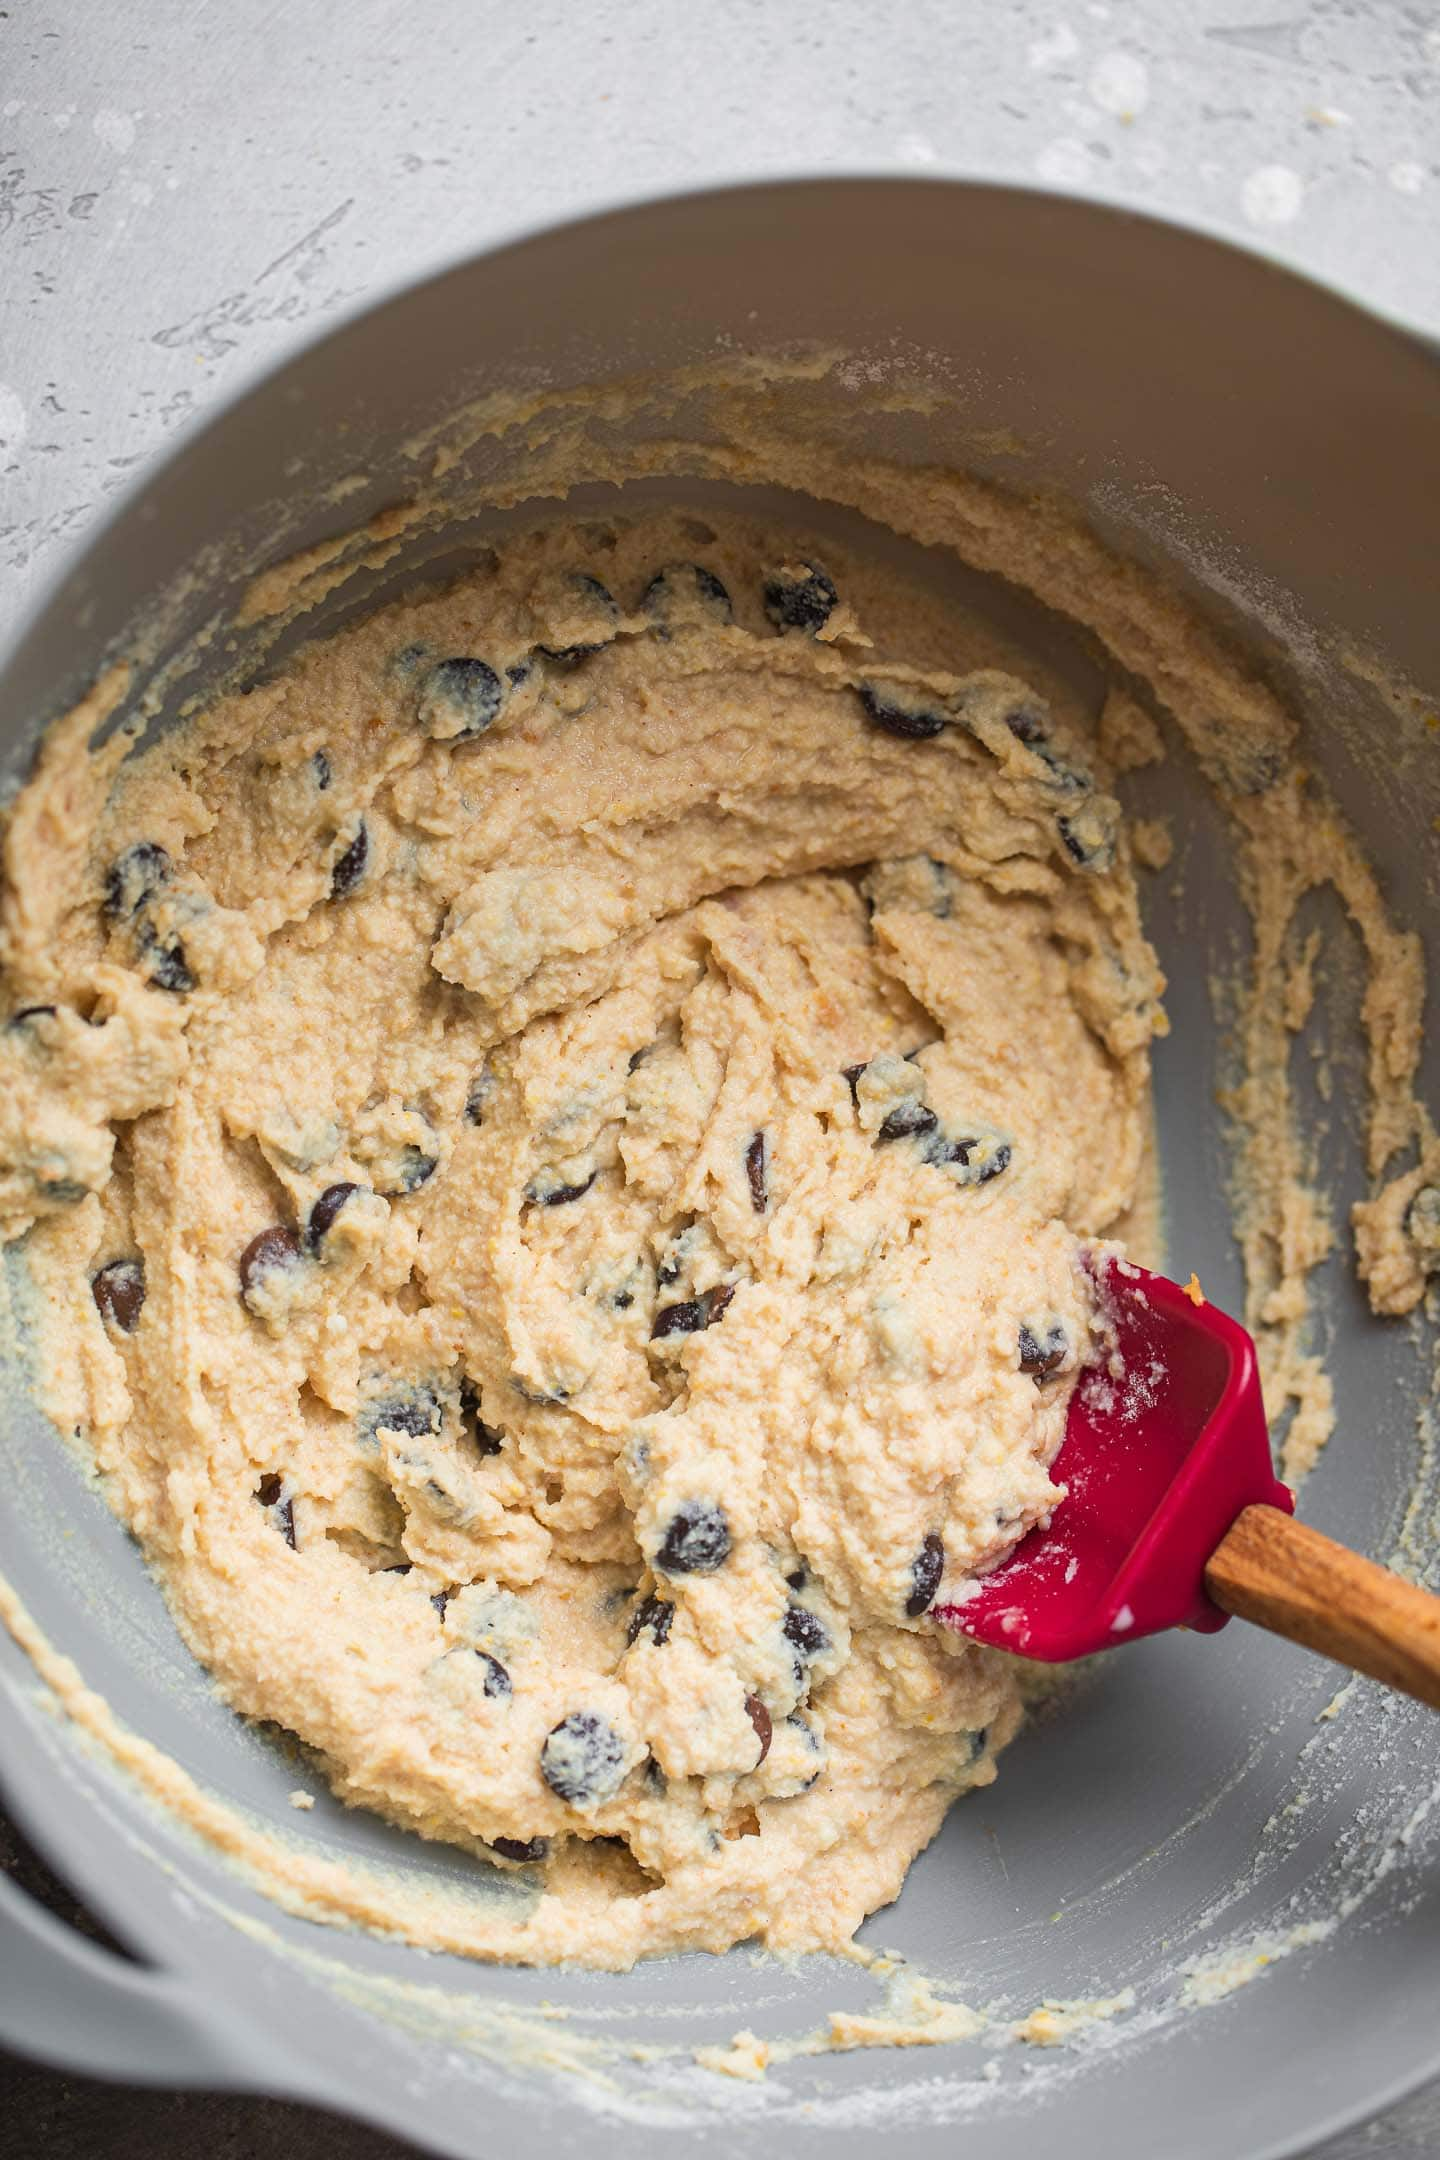 Coconut flour muffins batter with chocolate chips